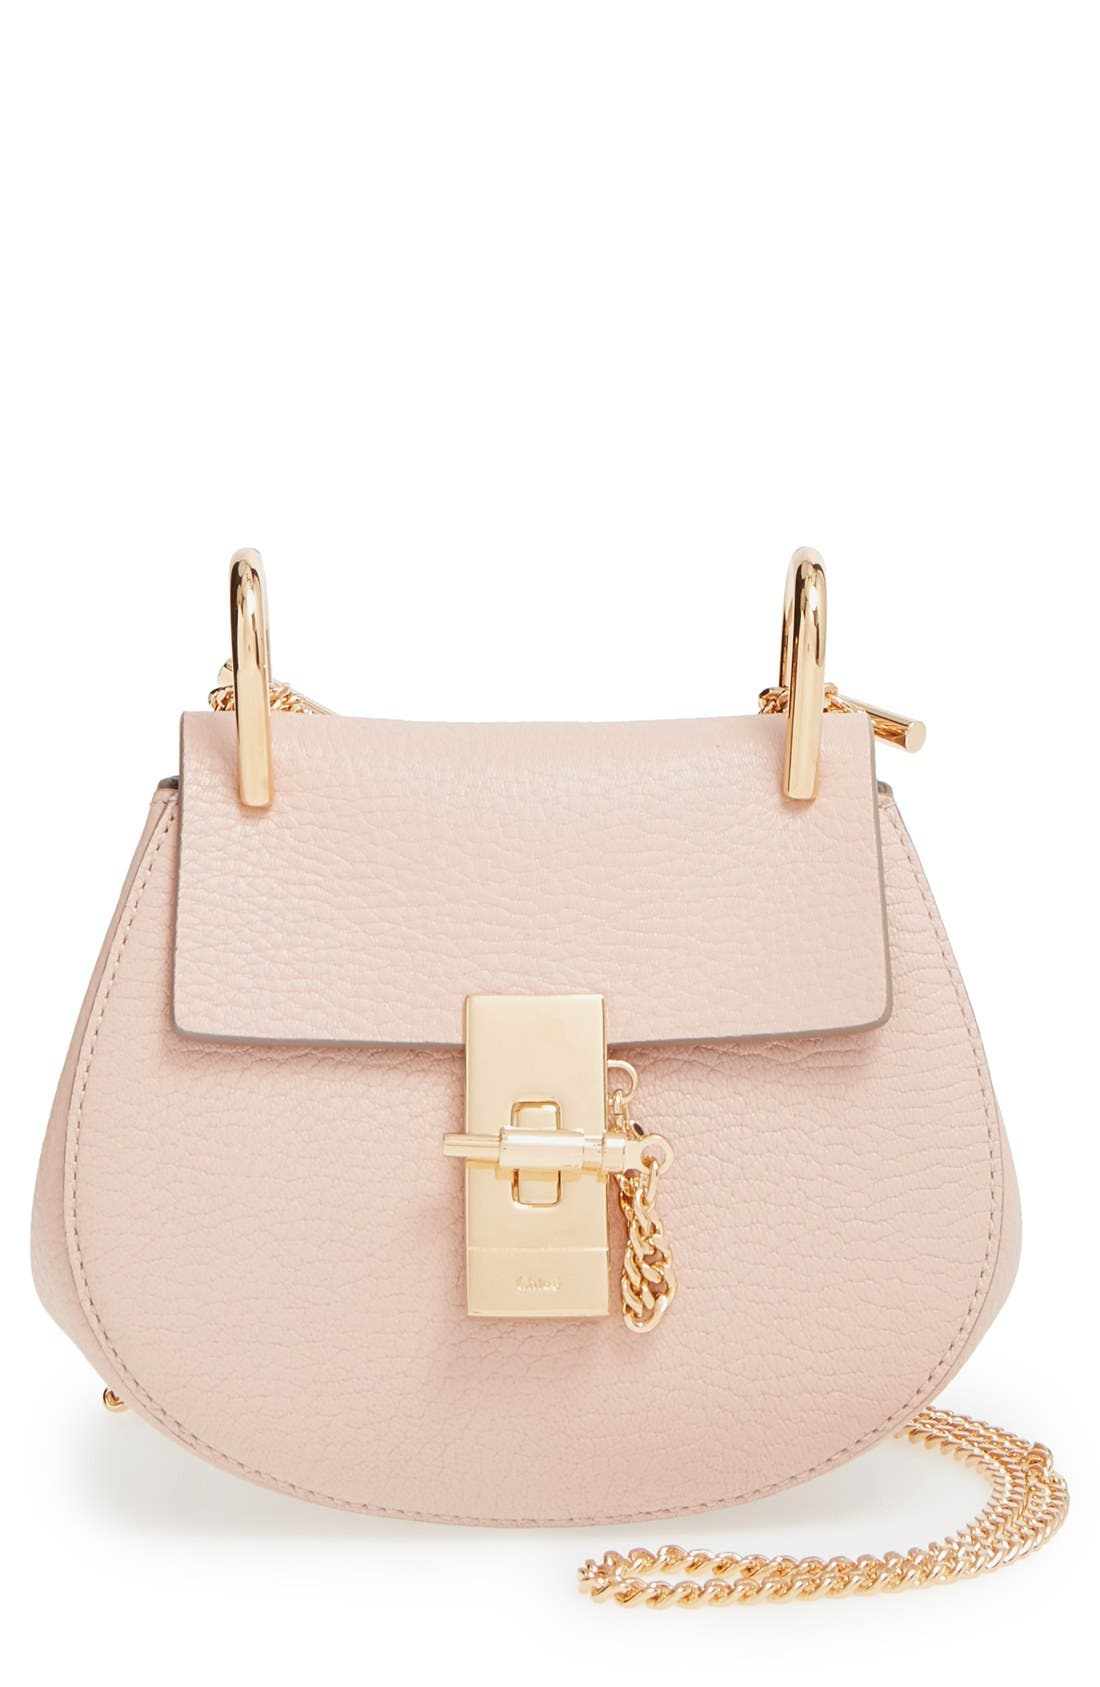 Alternate Image 1 Selected - Chloé 'Nano Drew' Lambskin Leather Shoulder Bag